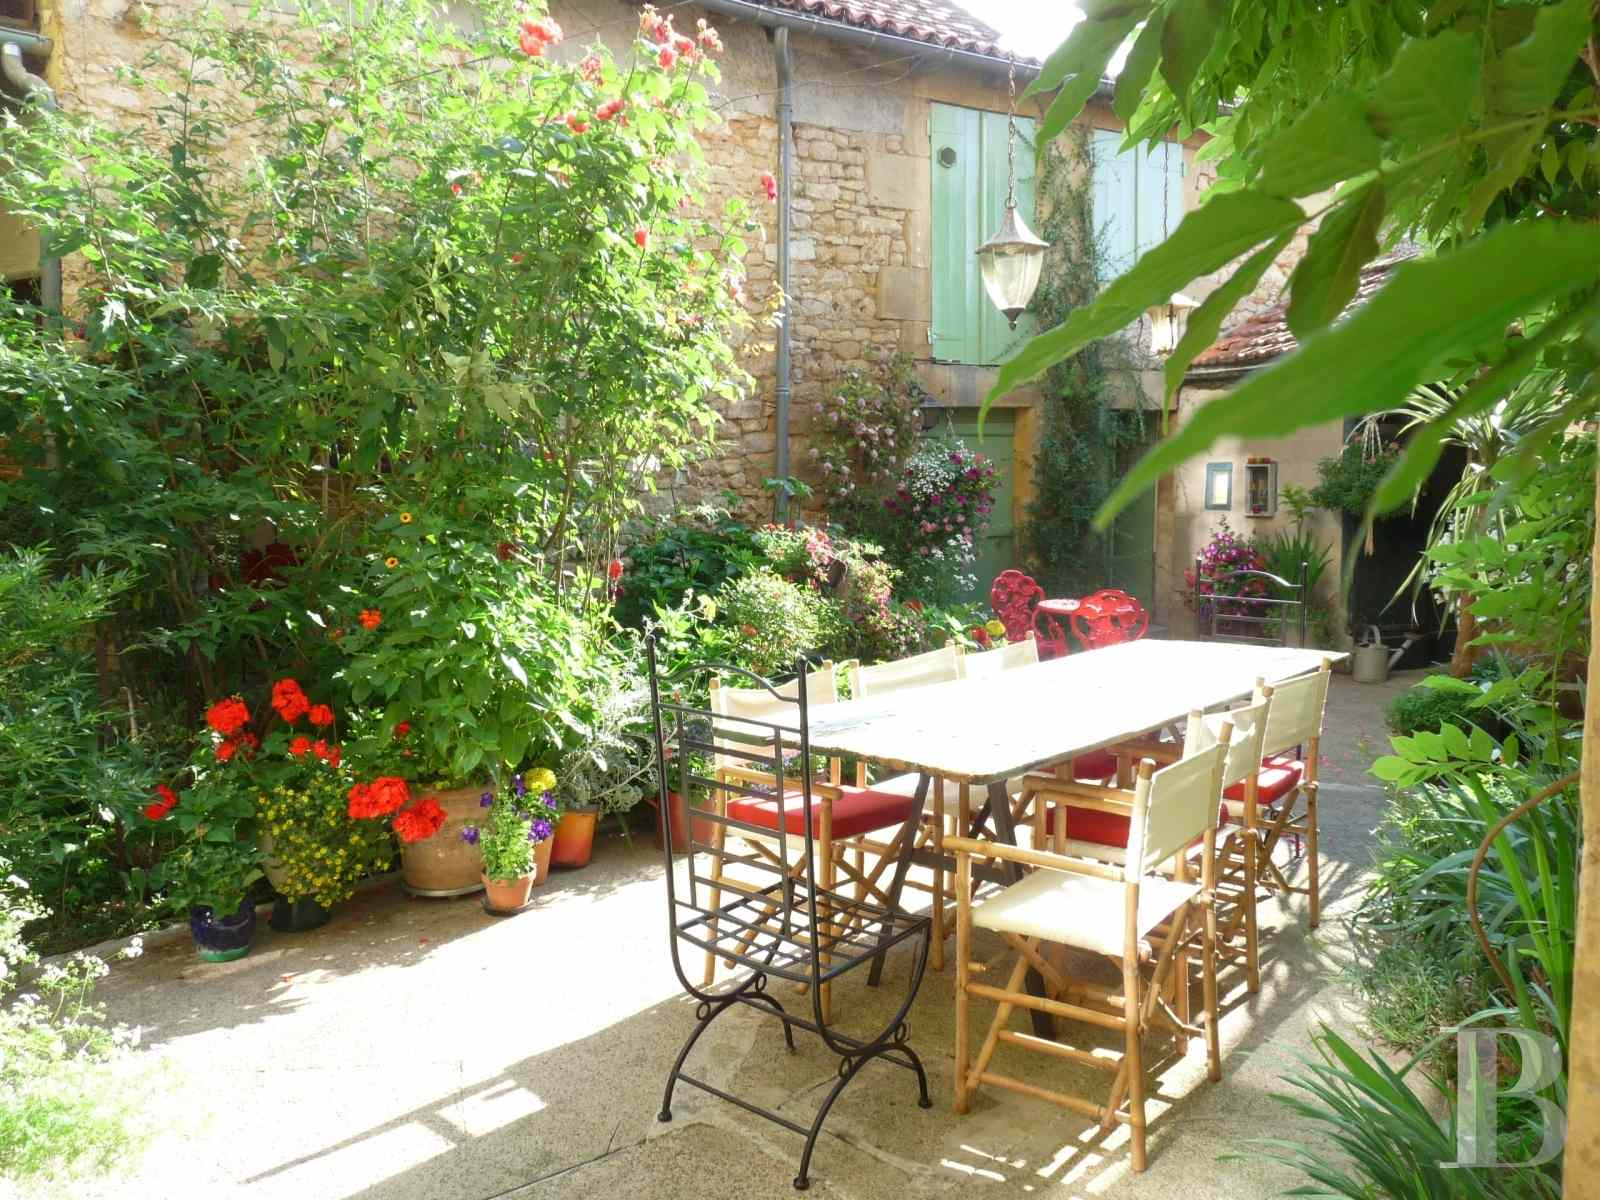 mansion houses for sale France aquitaine house 18th - 2 zoom